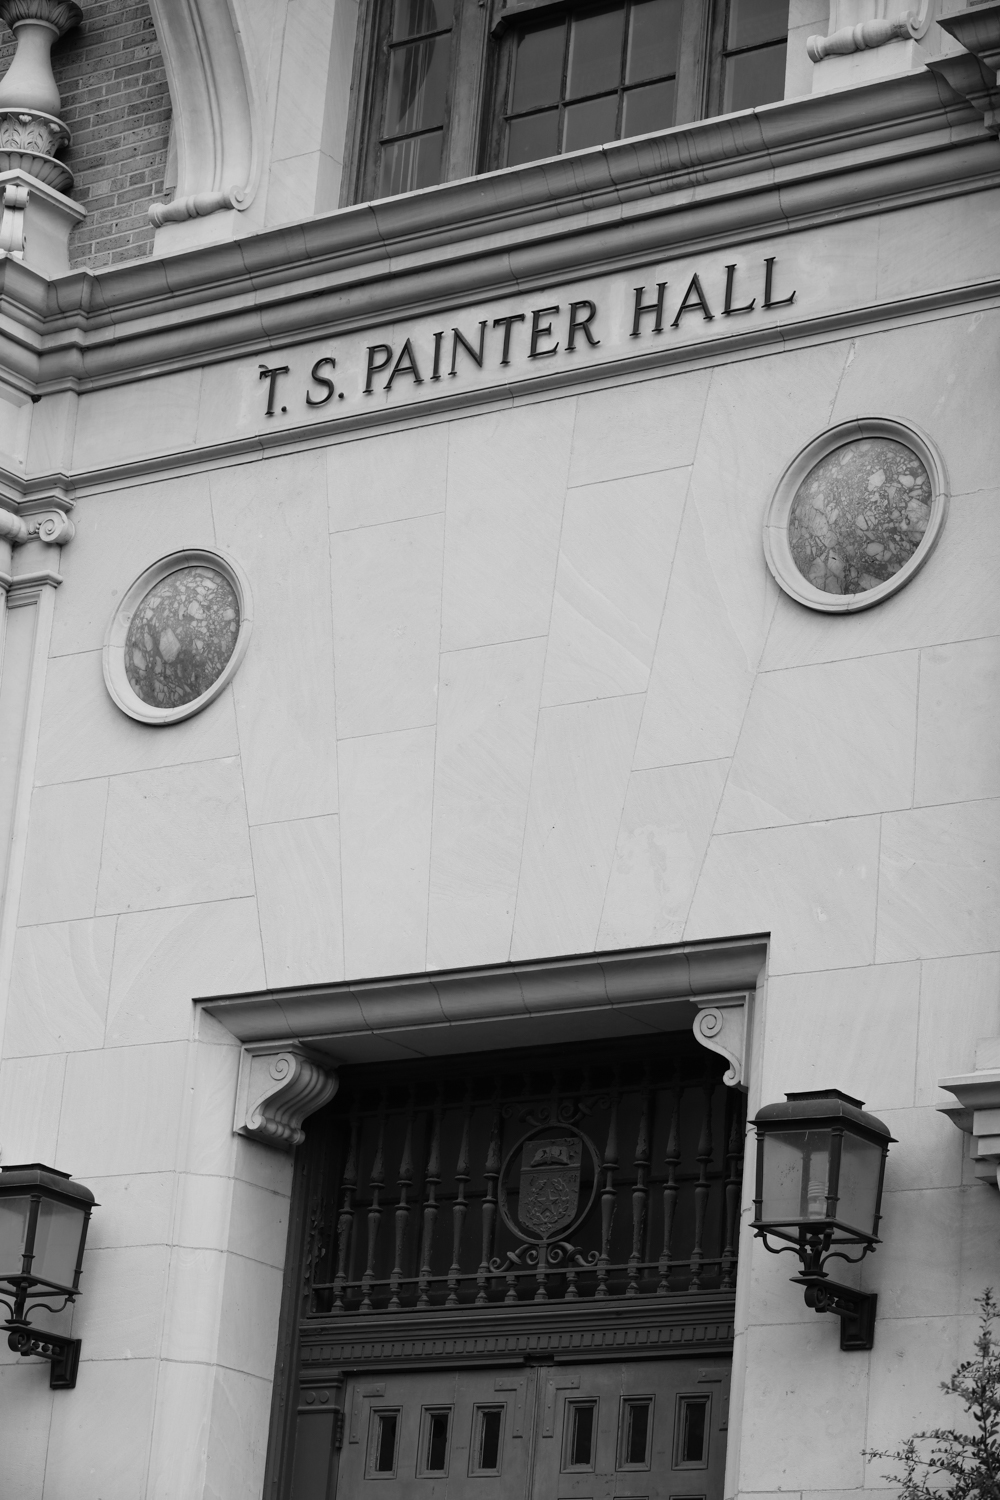 Painter Hall